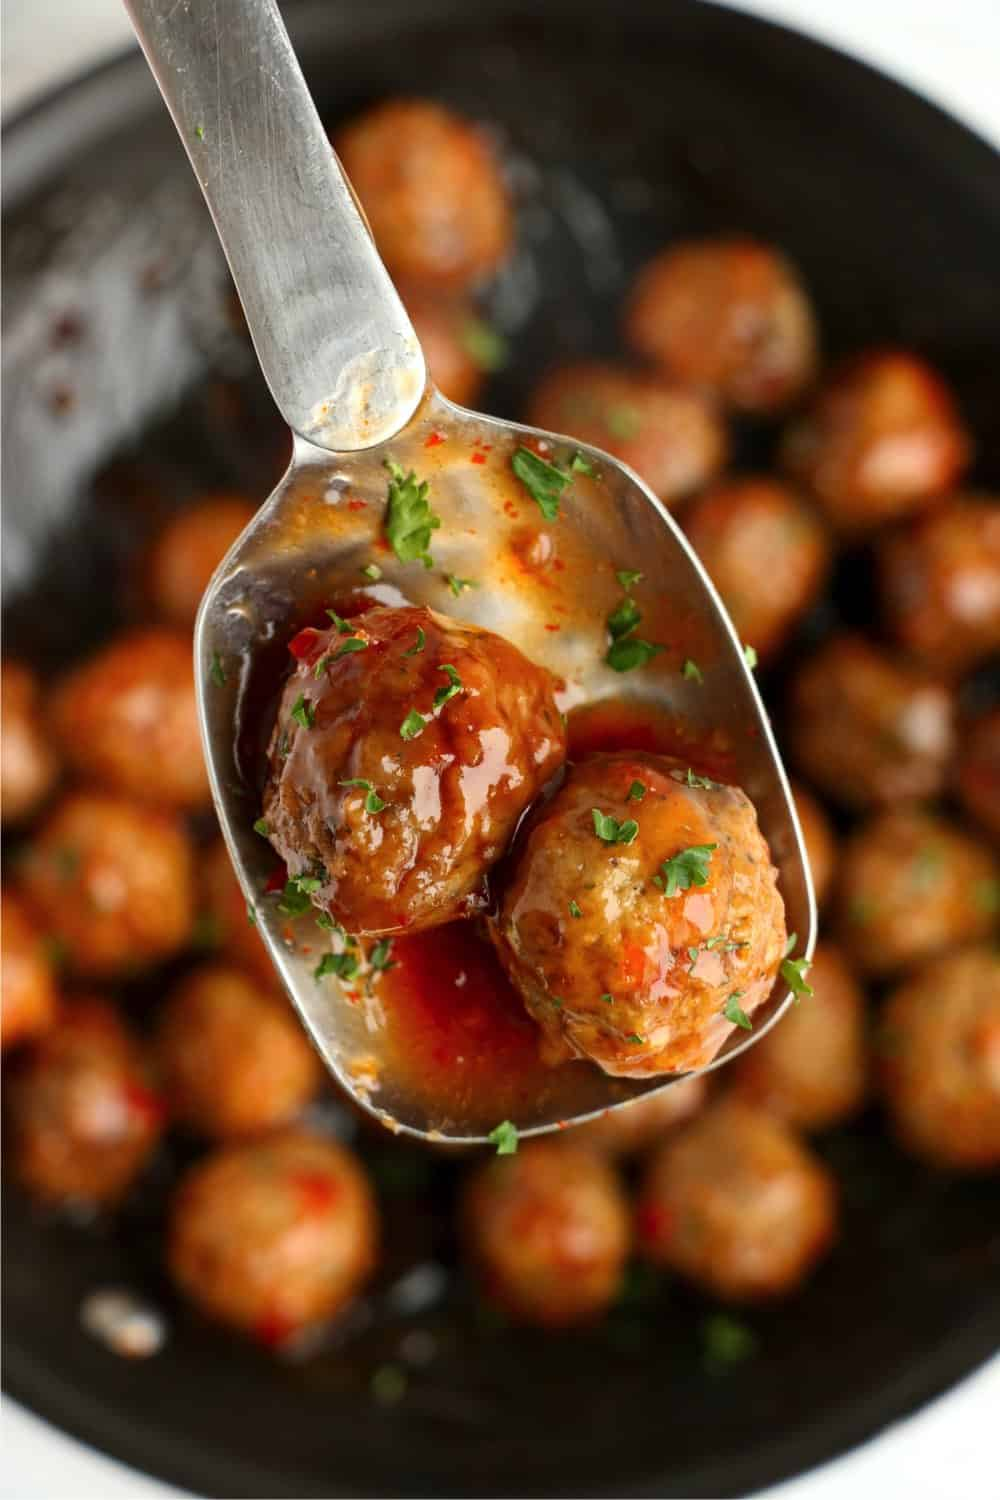 Cooked meatballs smothered in a sweet chili sauce